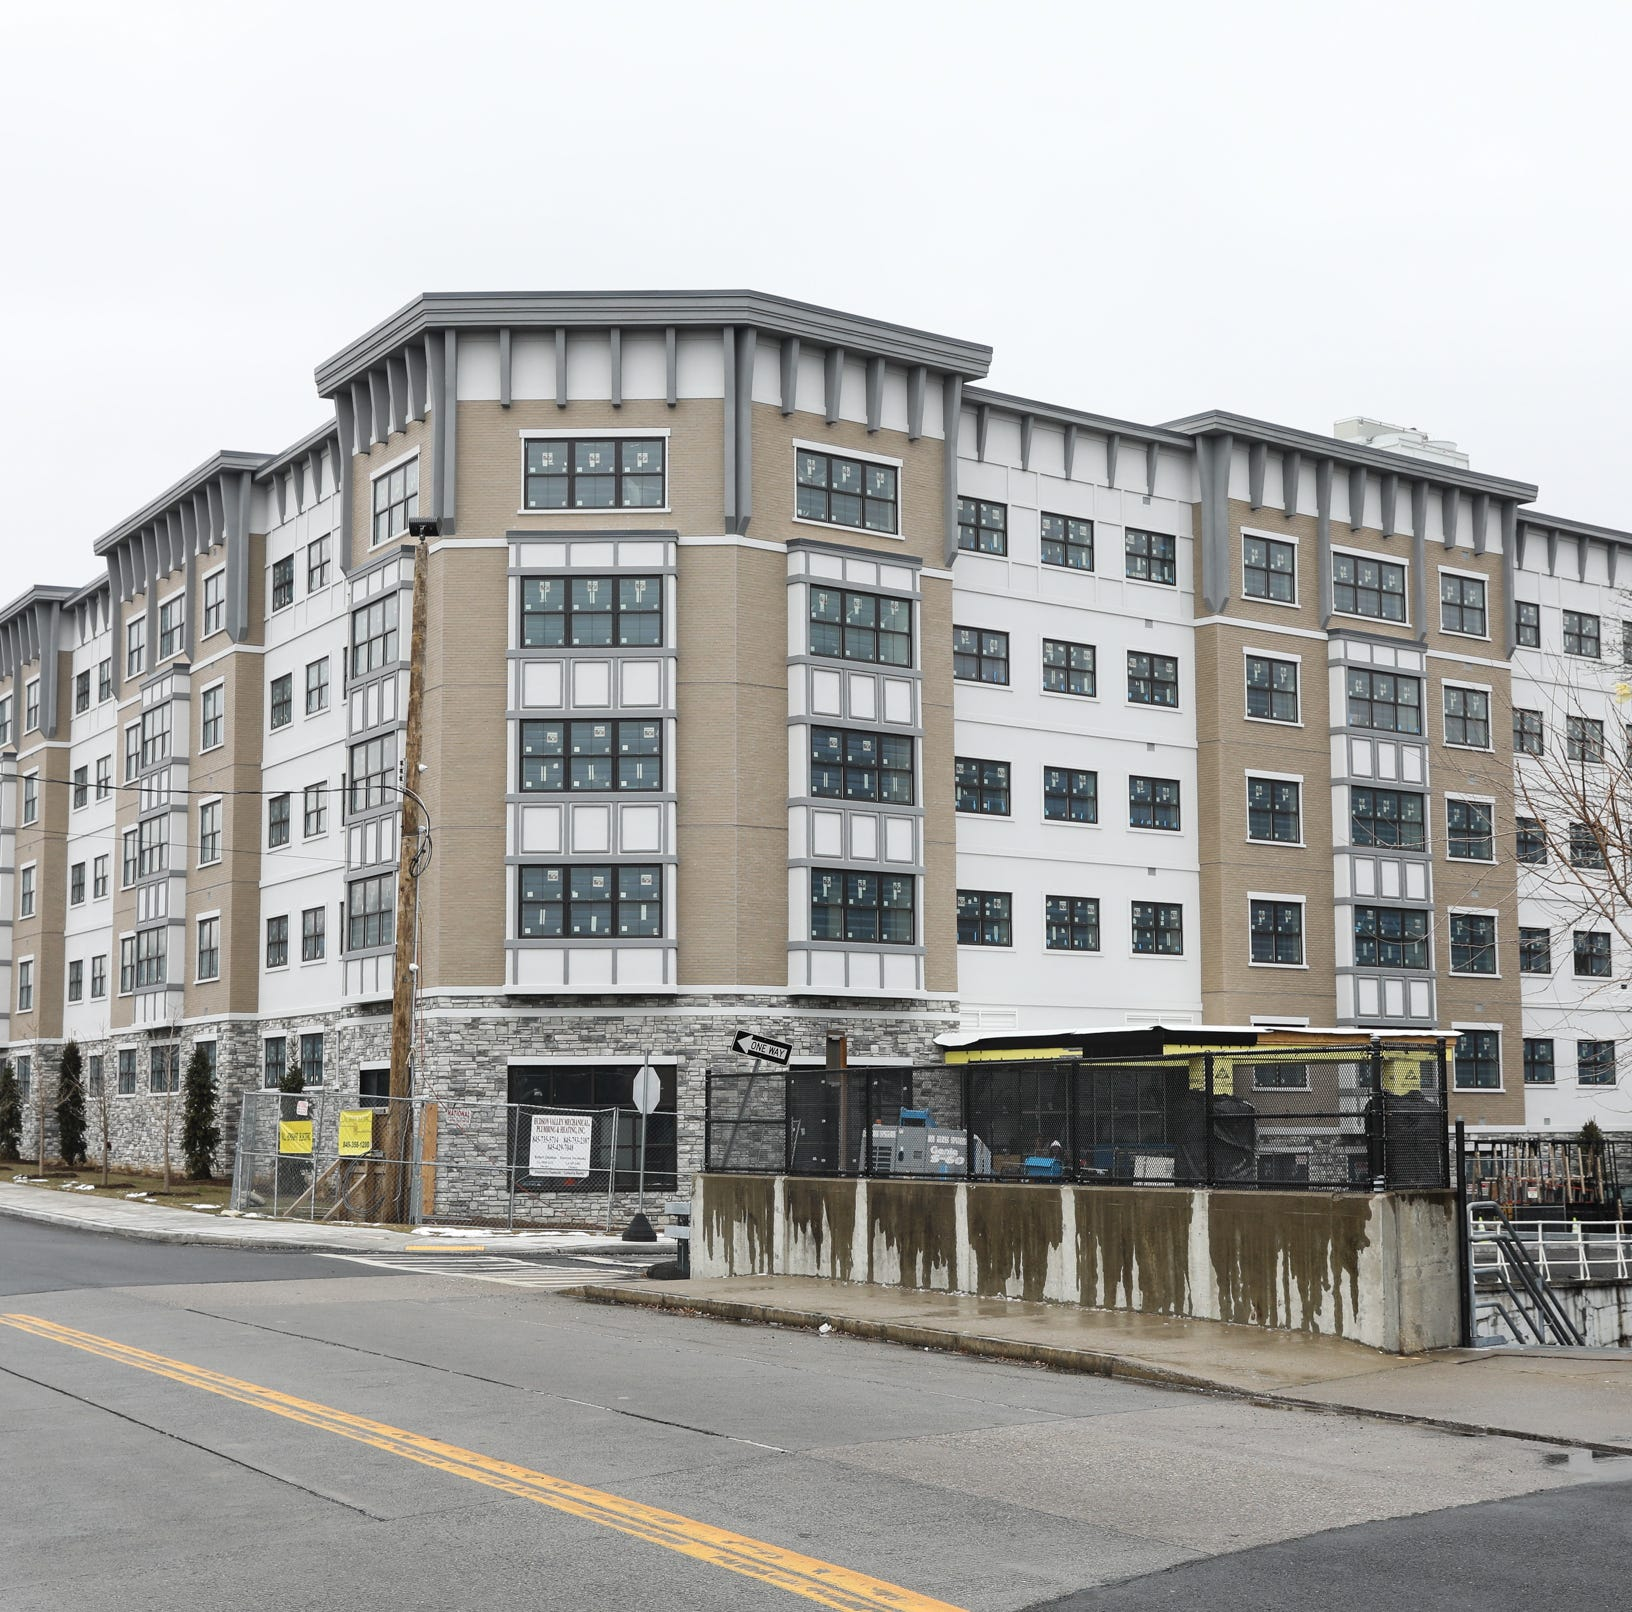 State of Real Estate in 2019: New apartments to open in Rockland